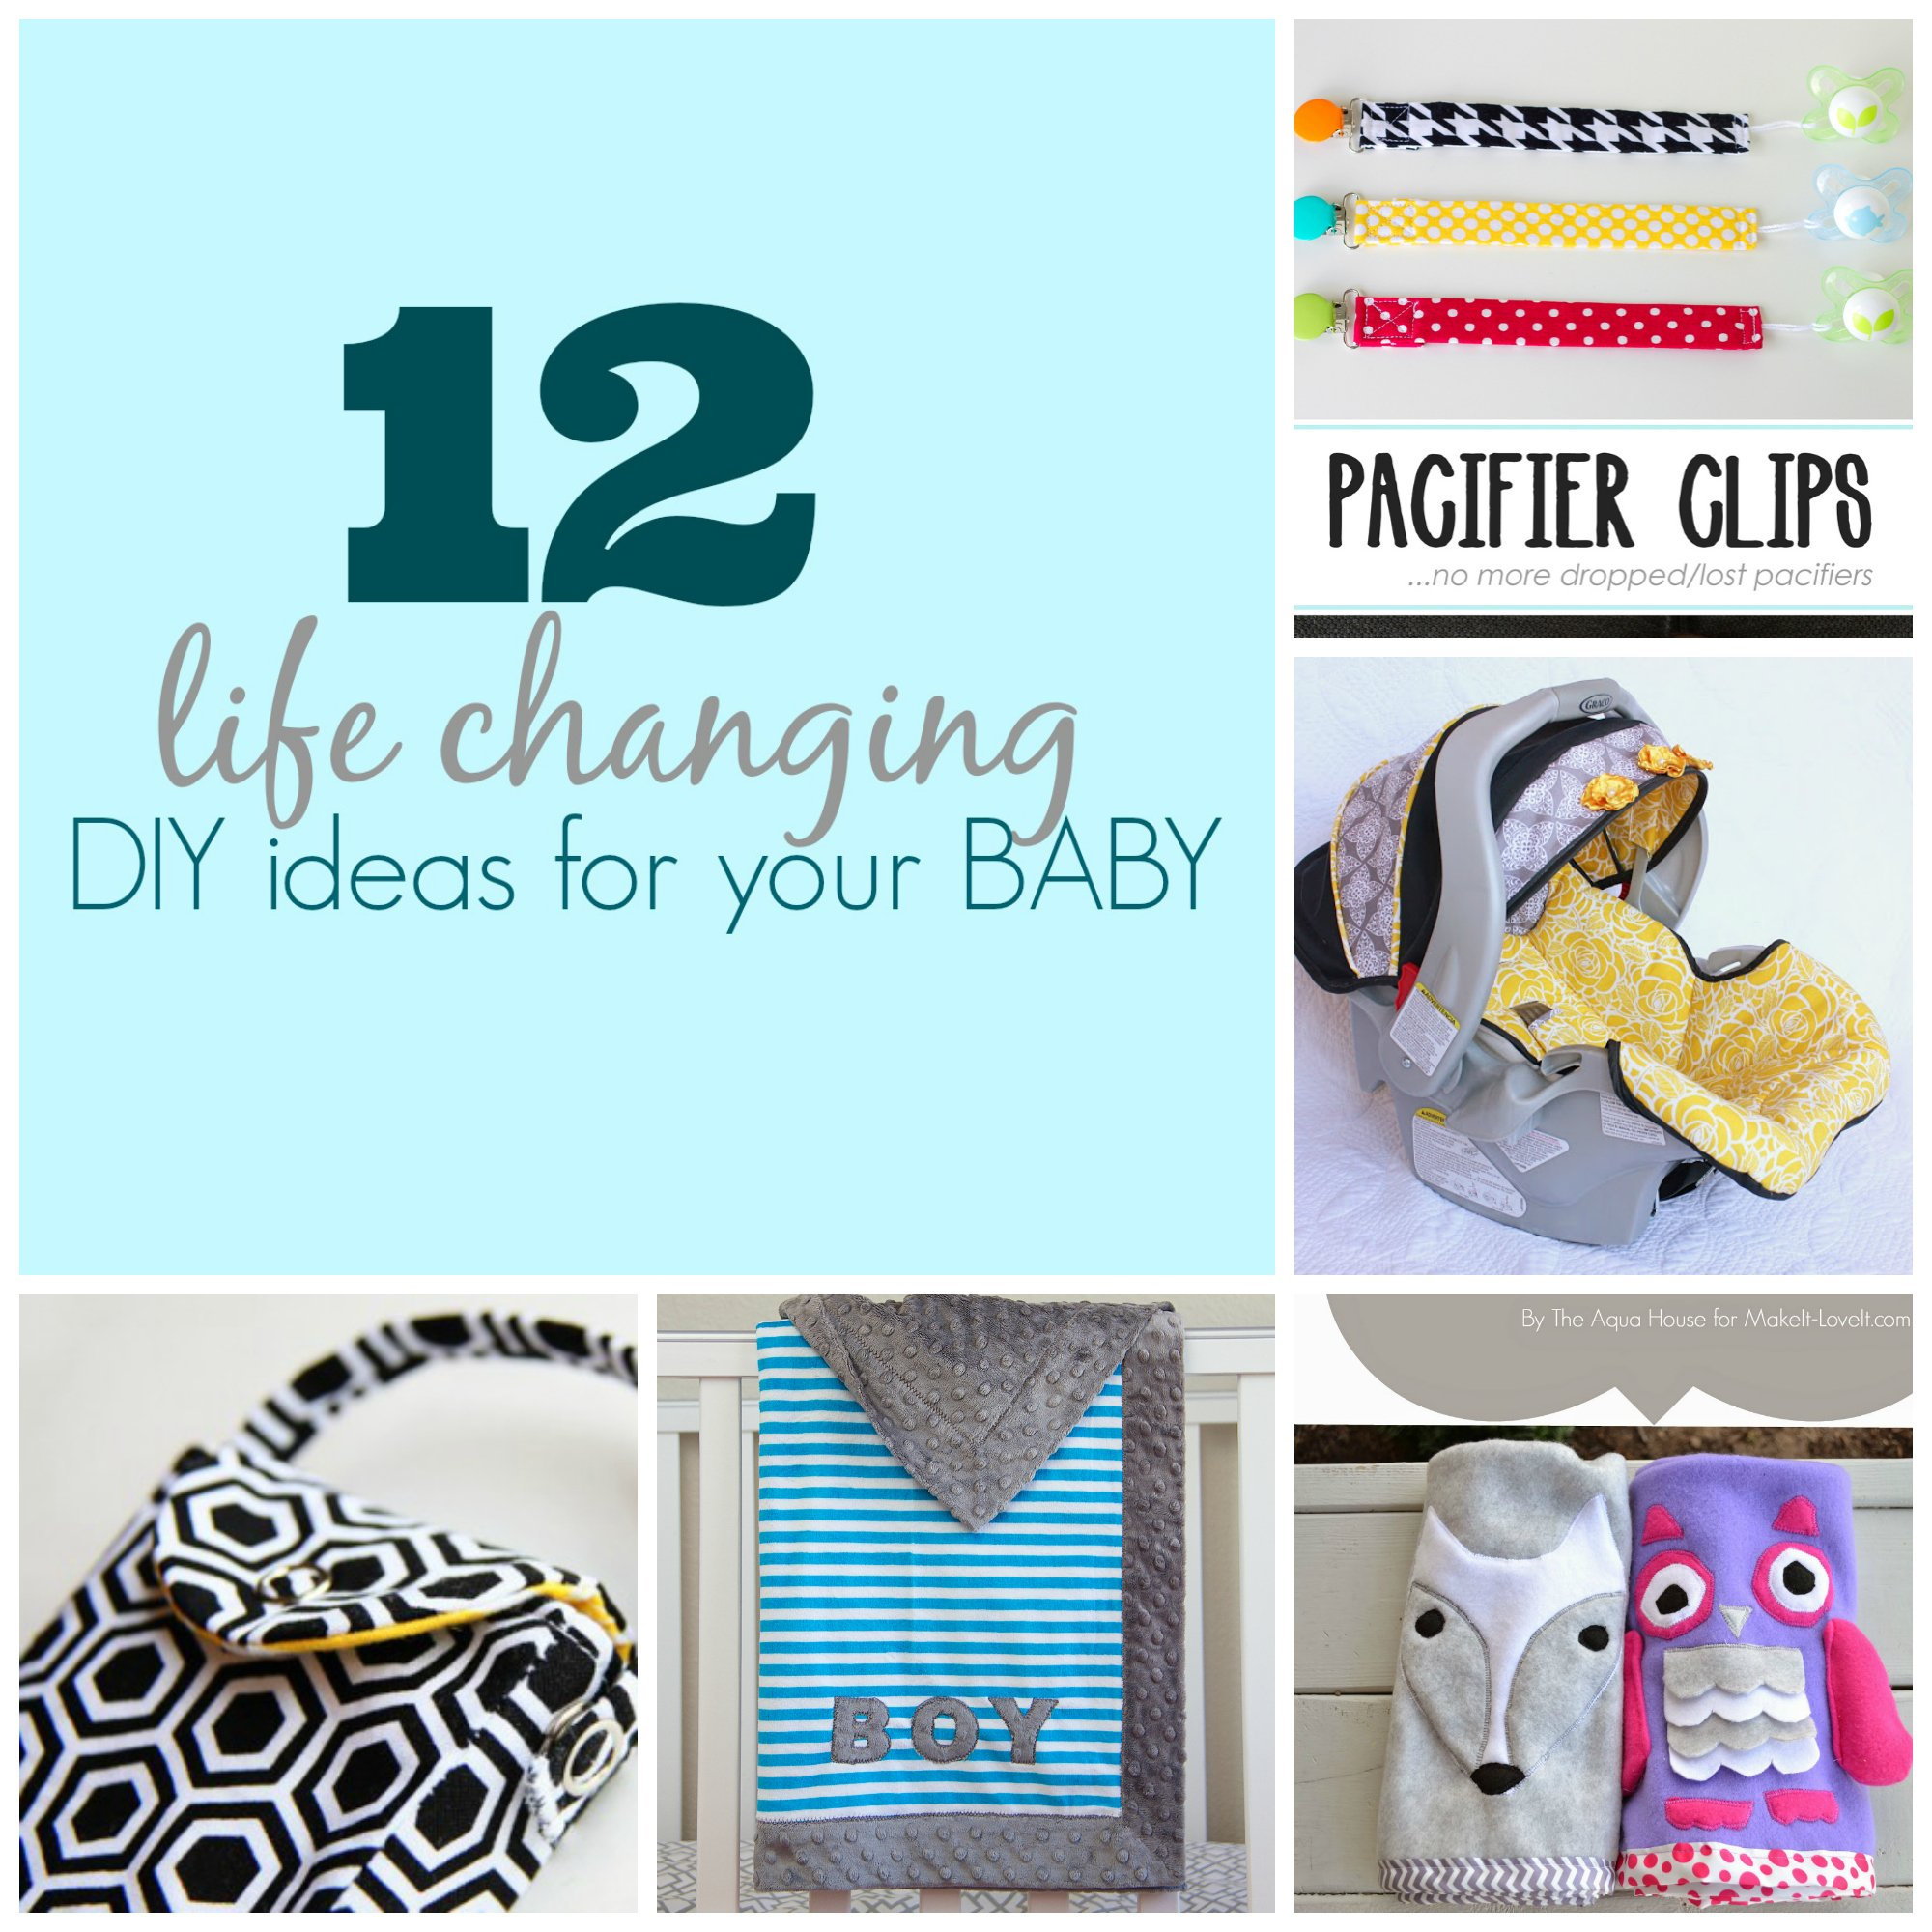 12 life changing diy ideas for your baby